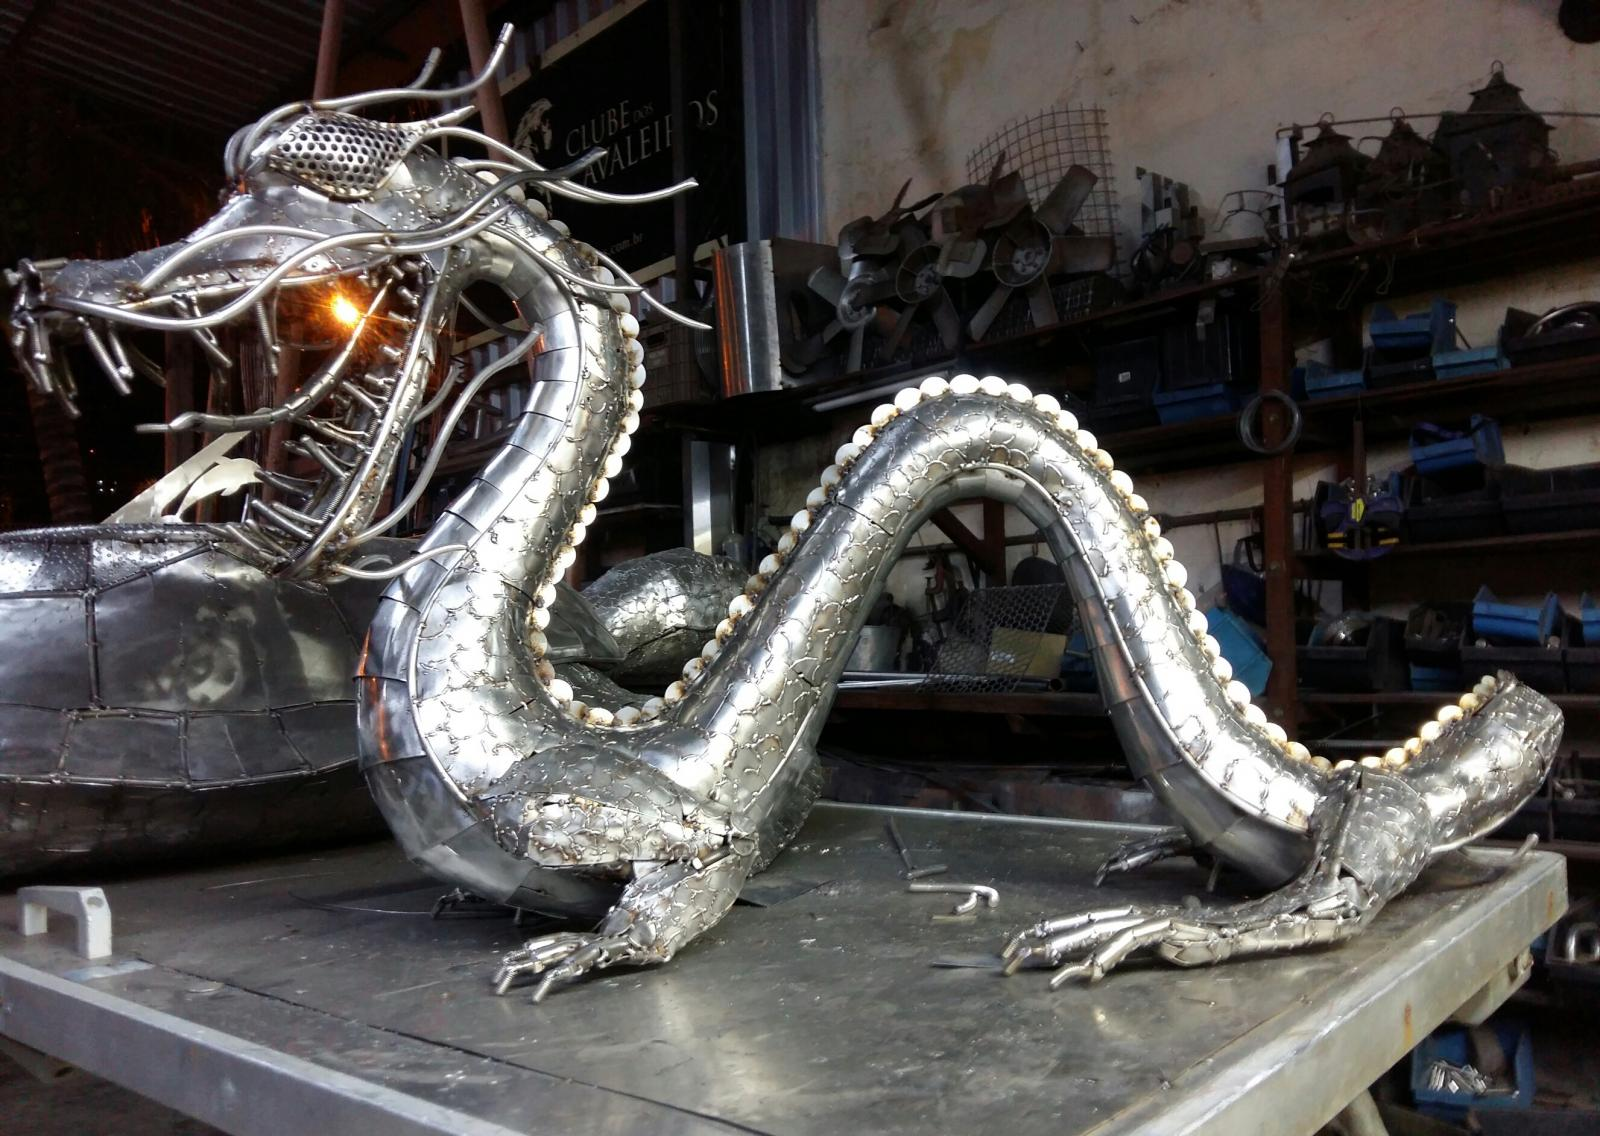 Chinese dragon - Stailess SteelZe Vasconcellos Metal Sculptures - Metal Sculptures - Campinas - São Paulo - Brasil metal sculptures, metal art me, art in Ironwood, Metal sculptures, carvings, arts, artist, vasconcellos ze, Brazilian artist, arts, horses, metal, iron horses, horses stainless, art stainless, Chinese Dragon, dragão chinês,